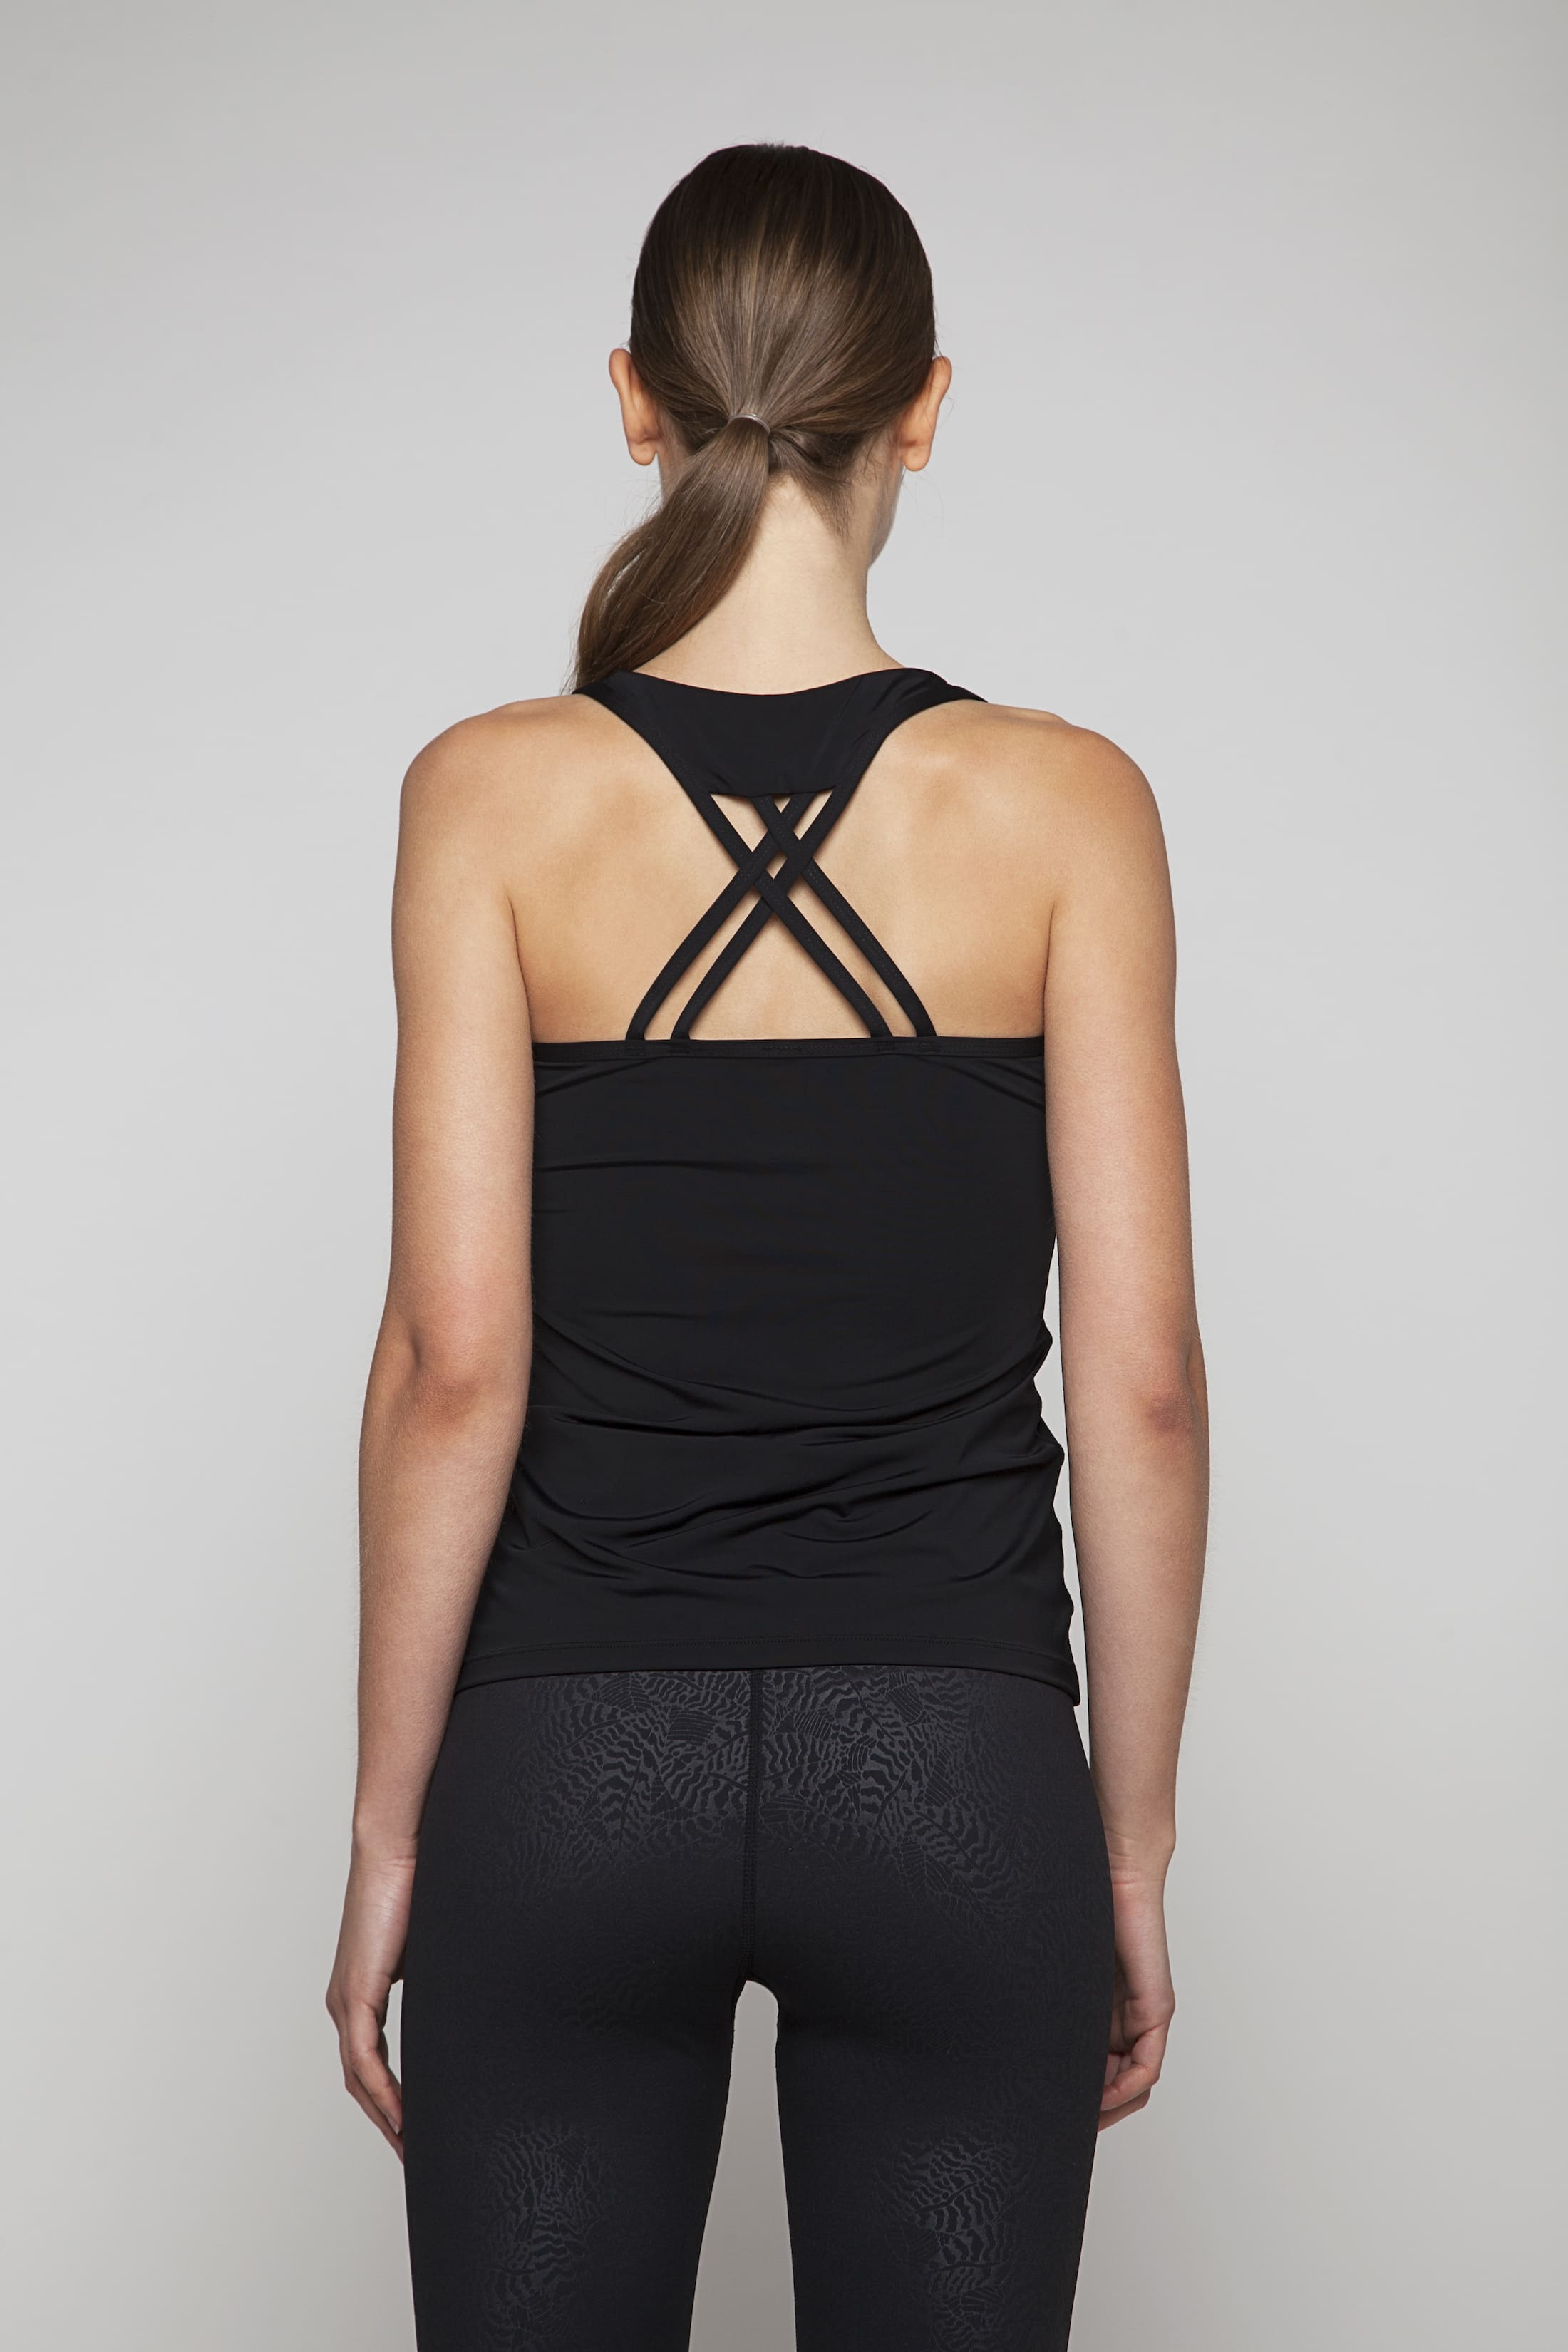 Soft, breathable training top